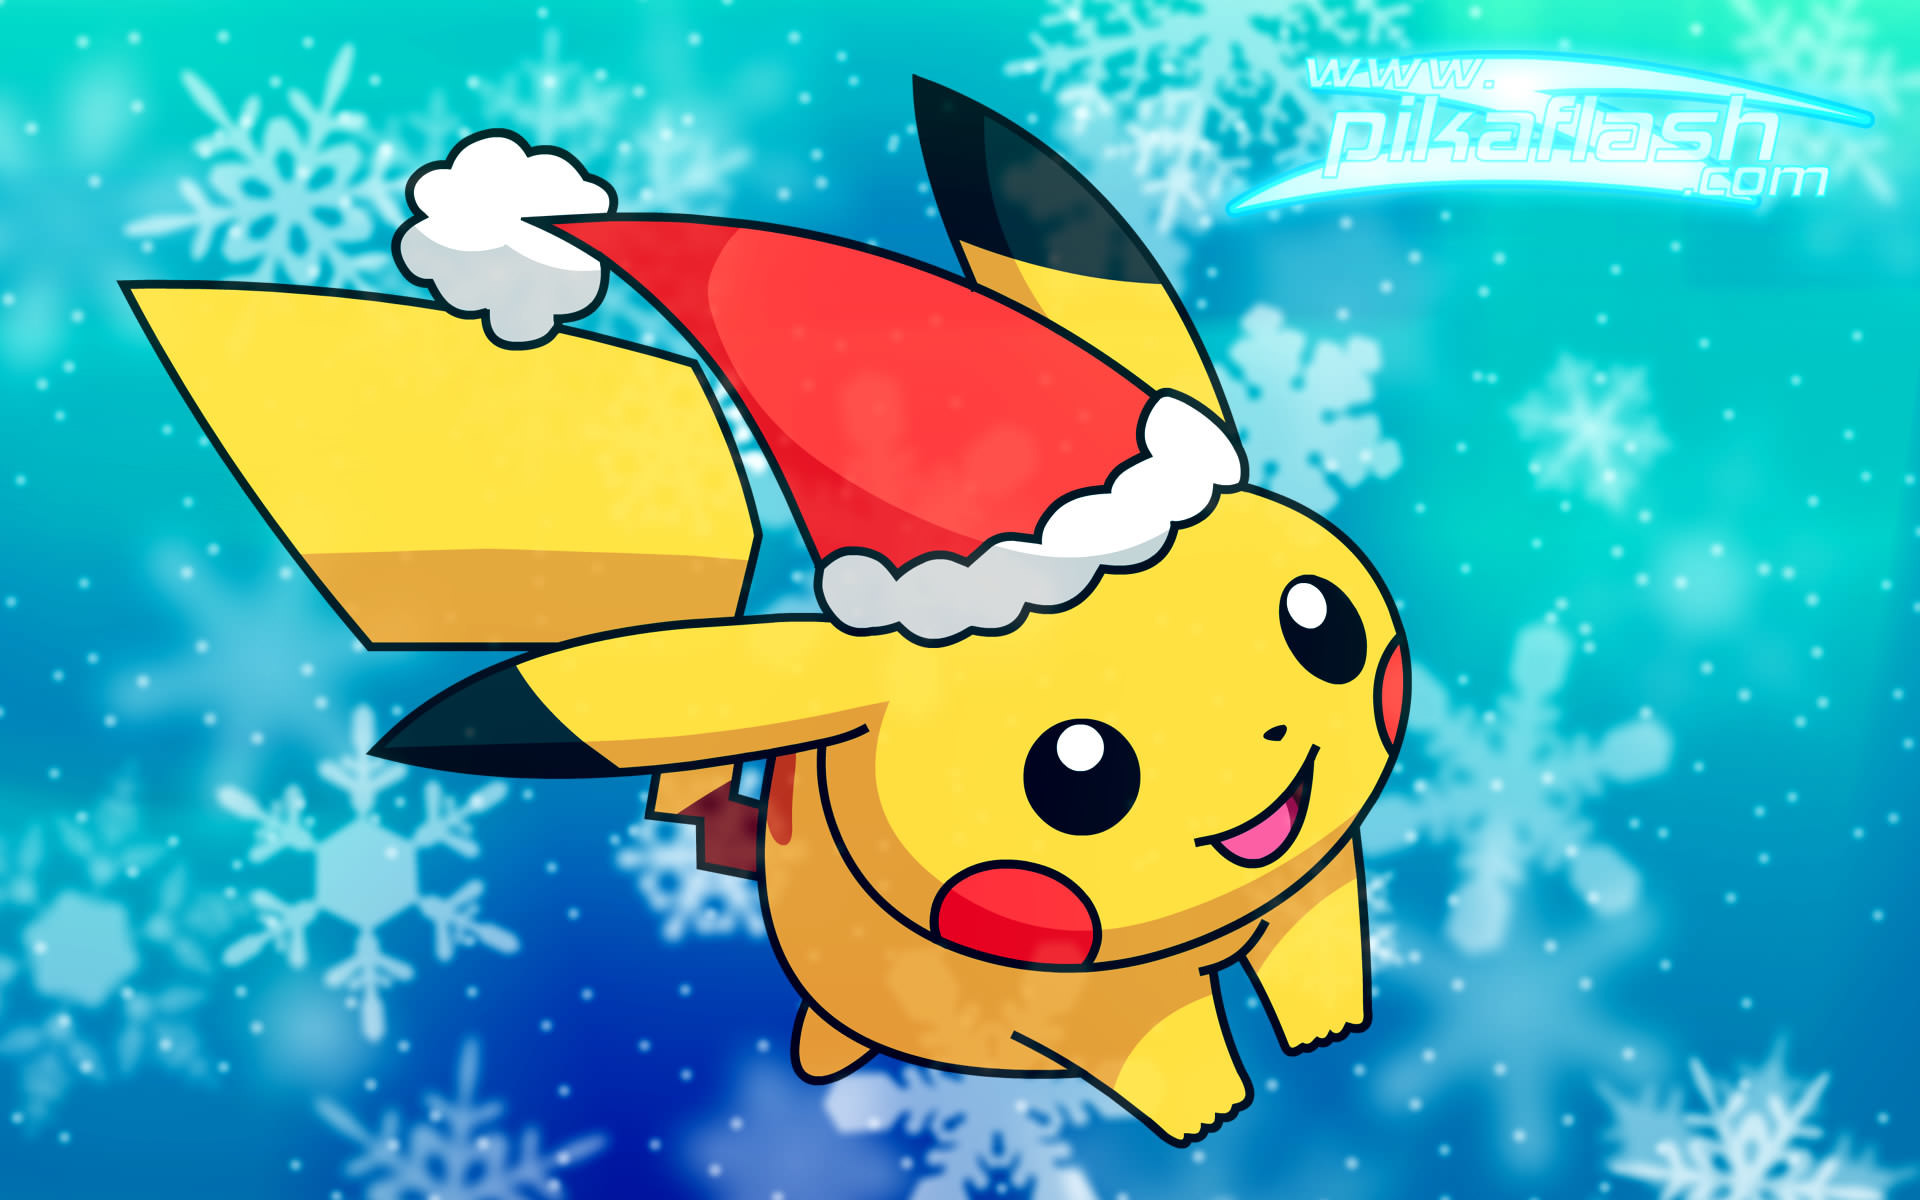 Res: 1920x1200, Cute Pokemon Wallpaper Pikachu High Resolution Hd Desktop At Movies Of For